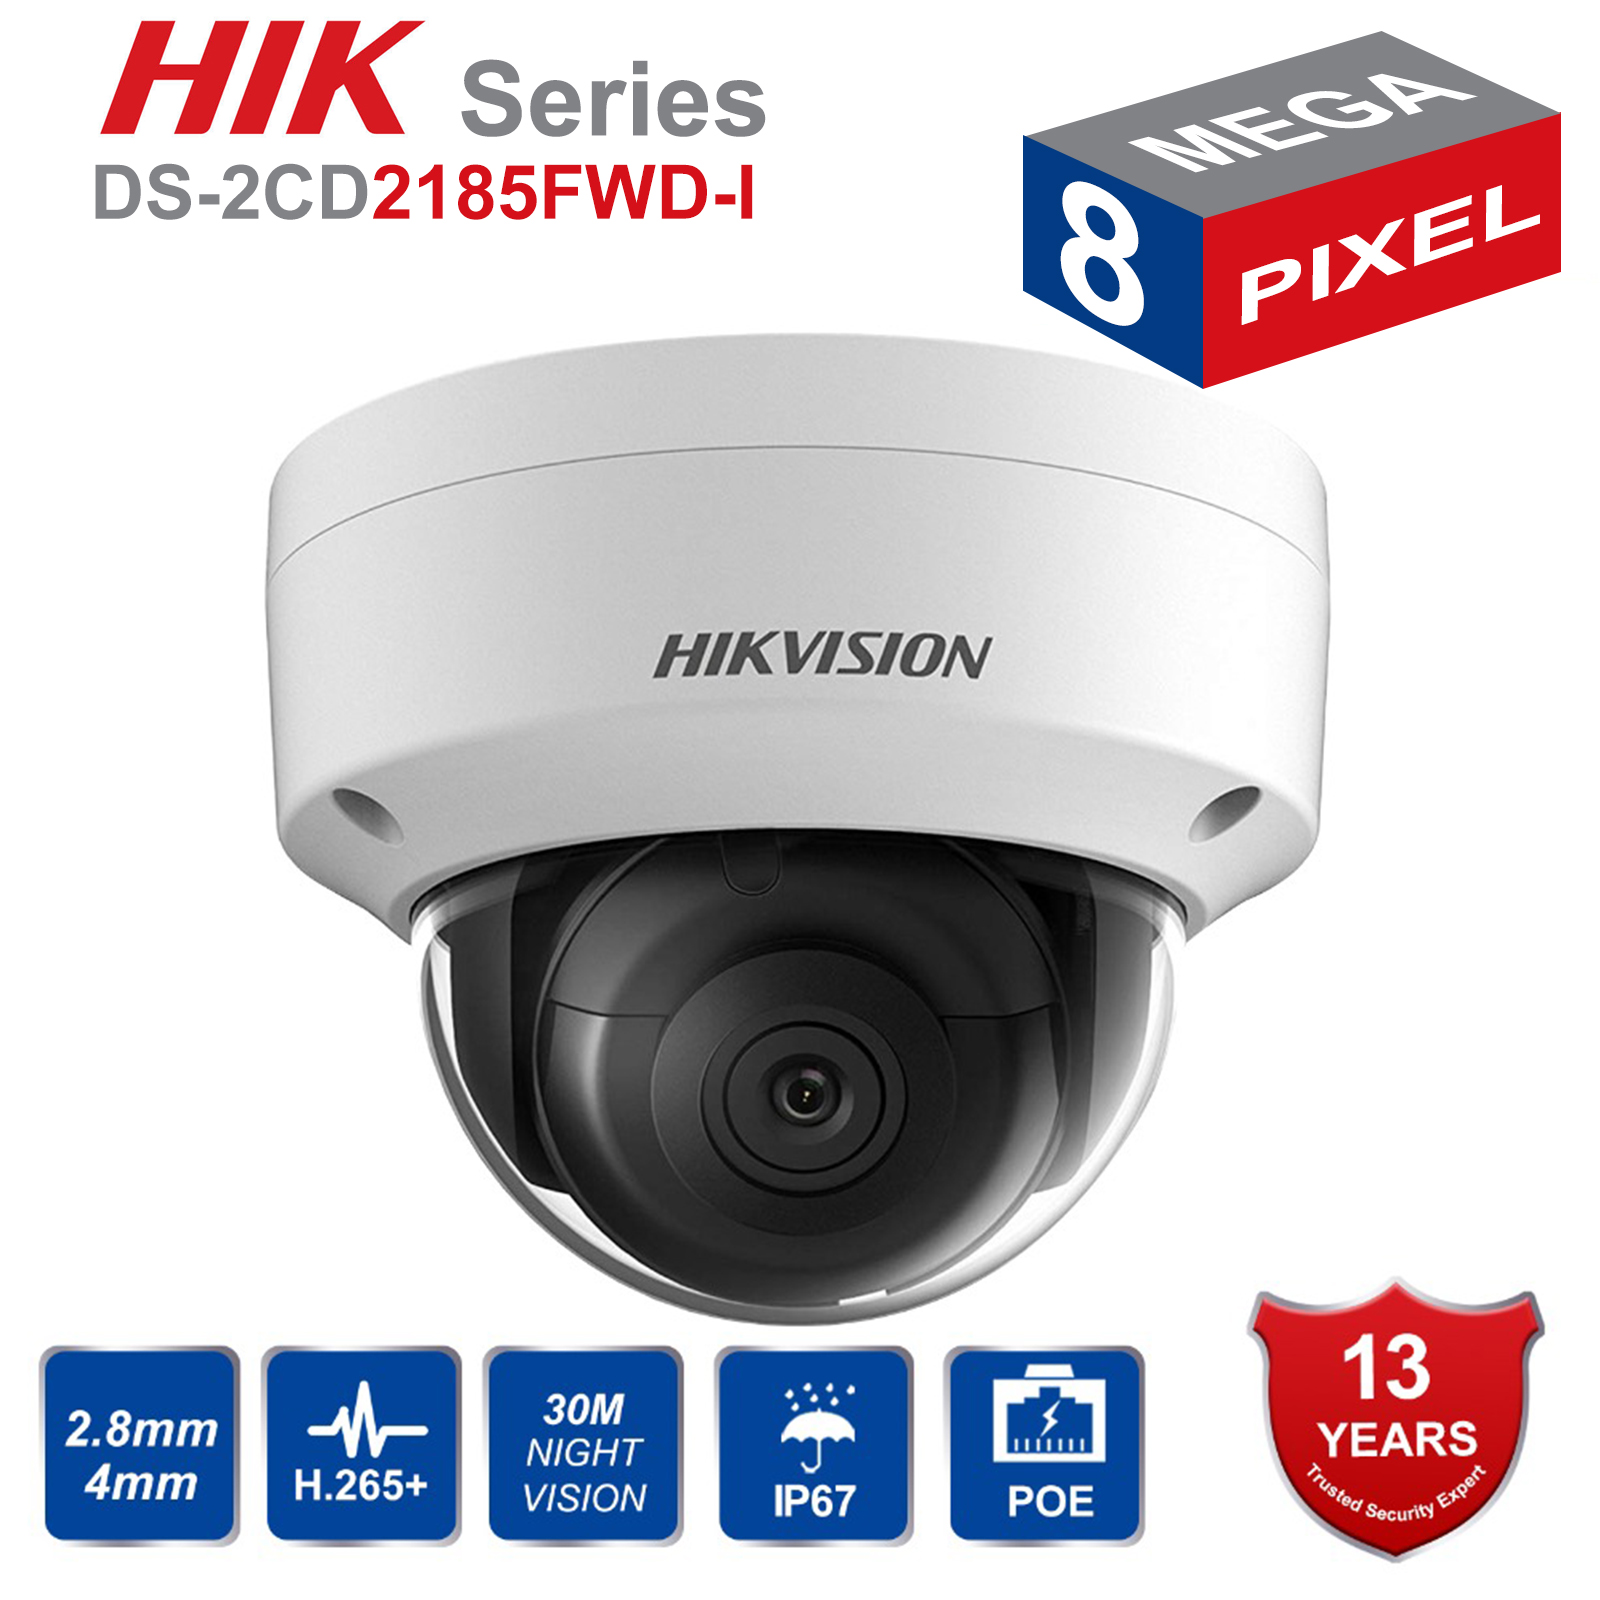 Hik Original Englisch DS-2CD2185FWD-I 8MP Outdoor Dome ip Kamera H.265 Aktualisierbar CCTV Kamera Interface sicherheits kamera 2,8mm